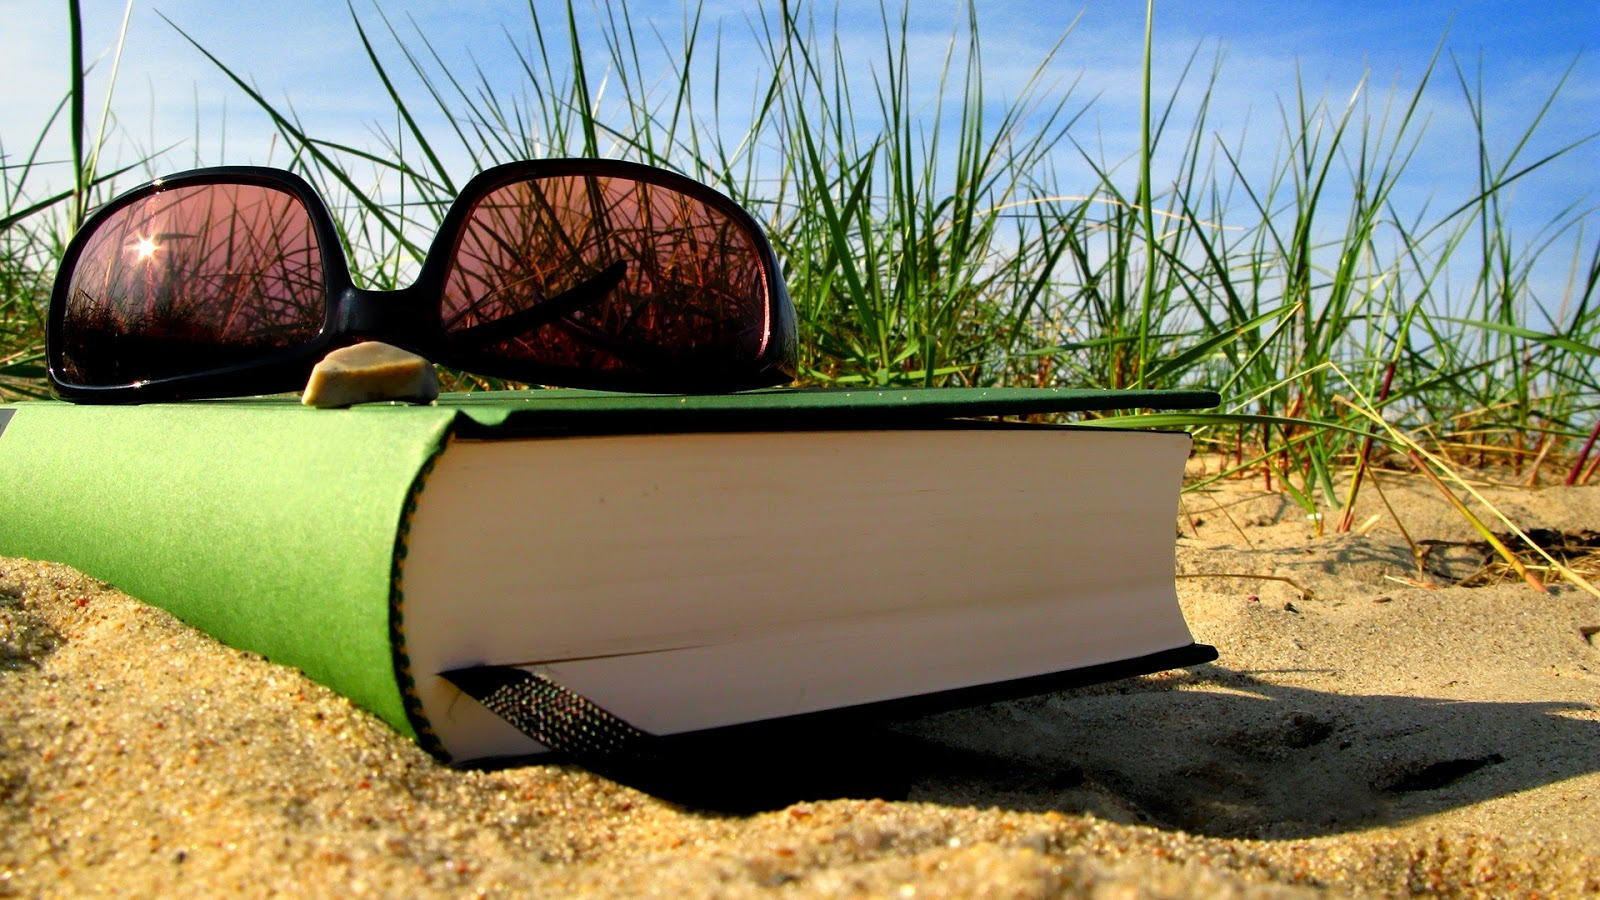 original-summer-vacation-book-glasses-bookmark-sand.jpg